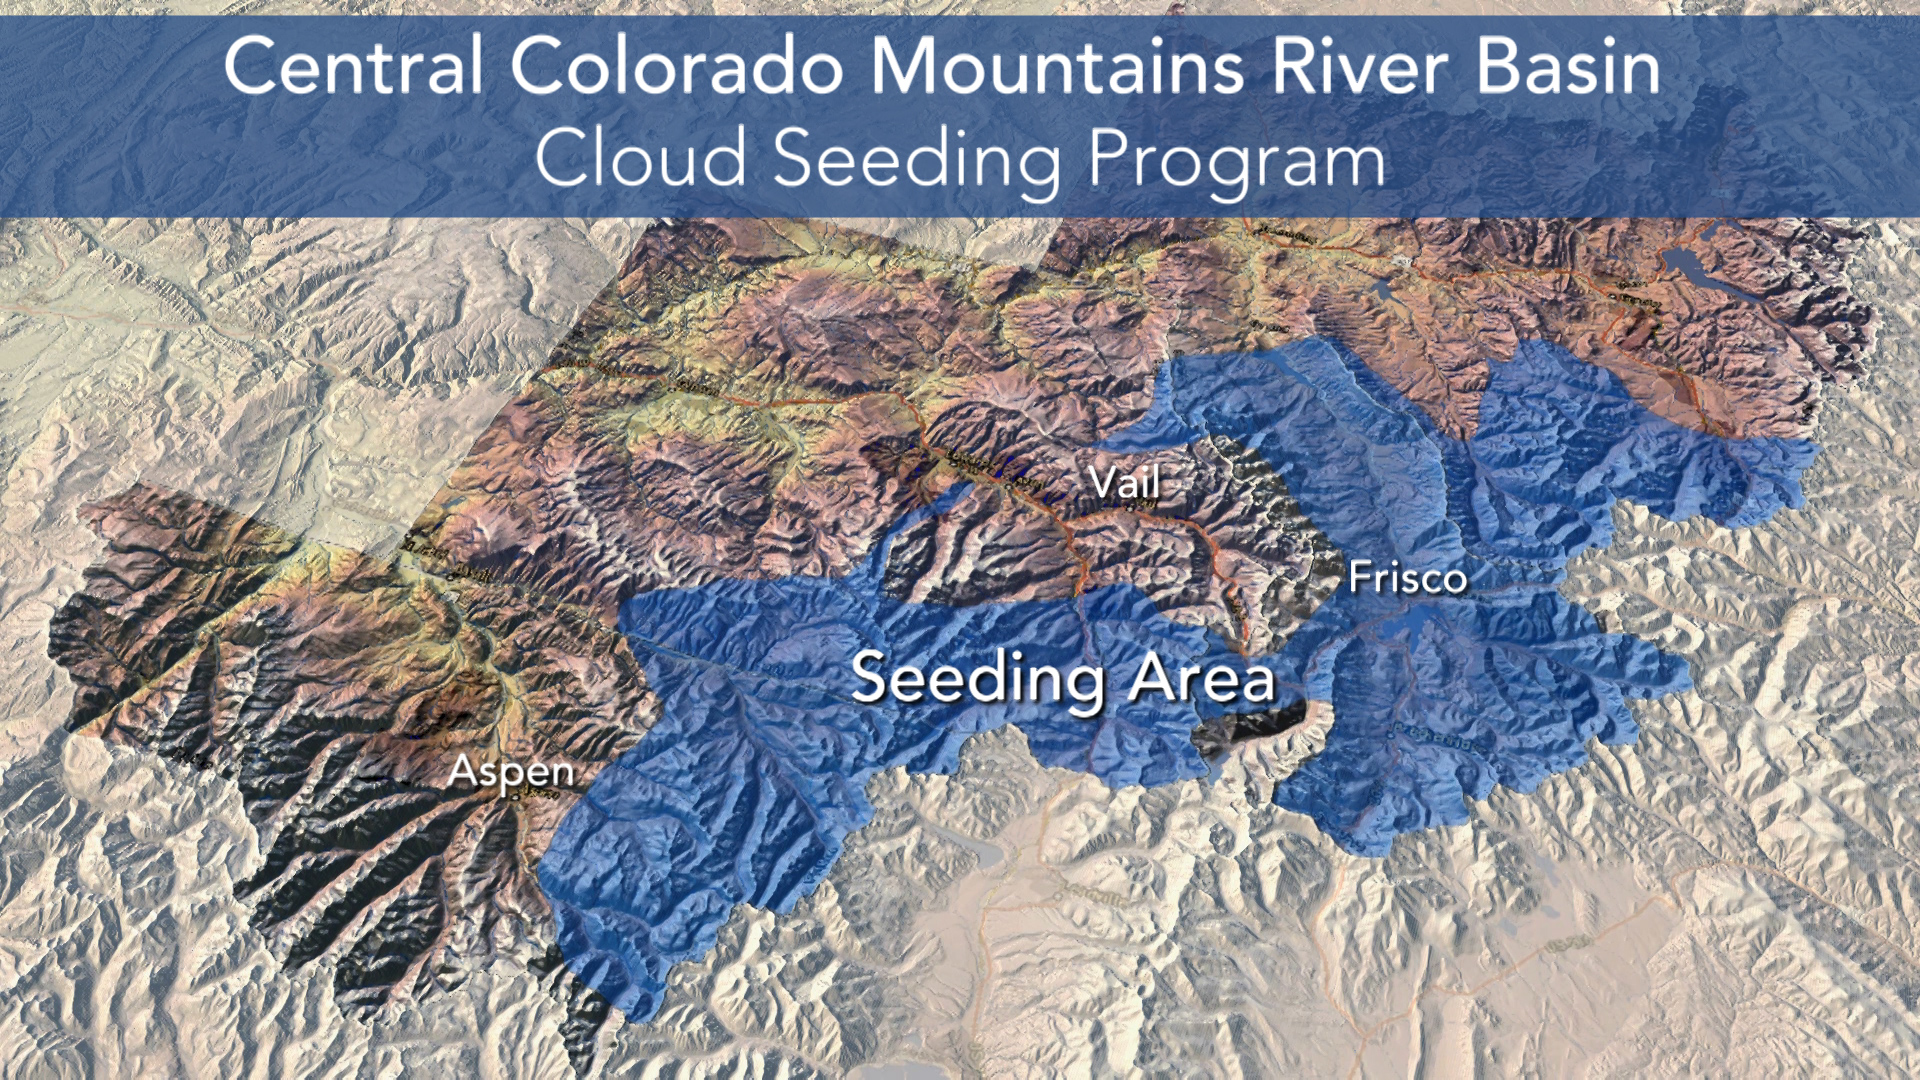 Cloud seeding generators are located in Eagle, Grand, Pitkin and Summit counties. There are 7 cloud seeding programs in Colorado.